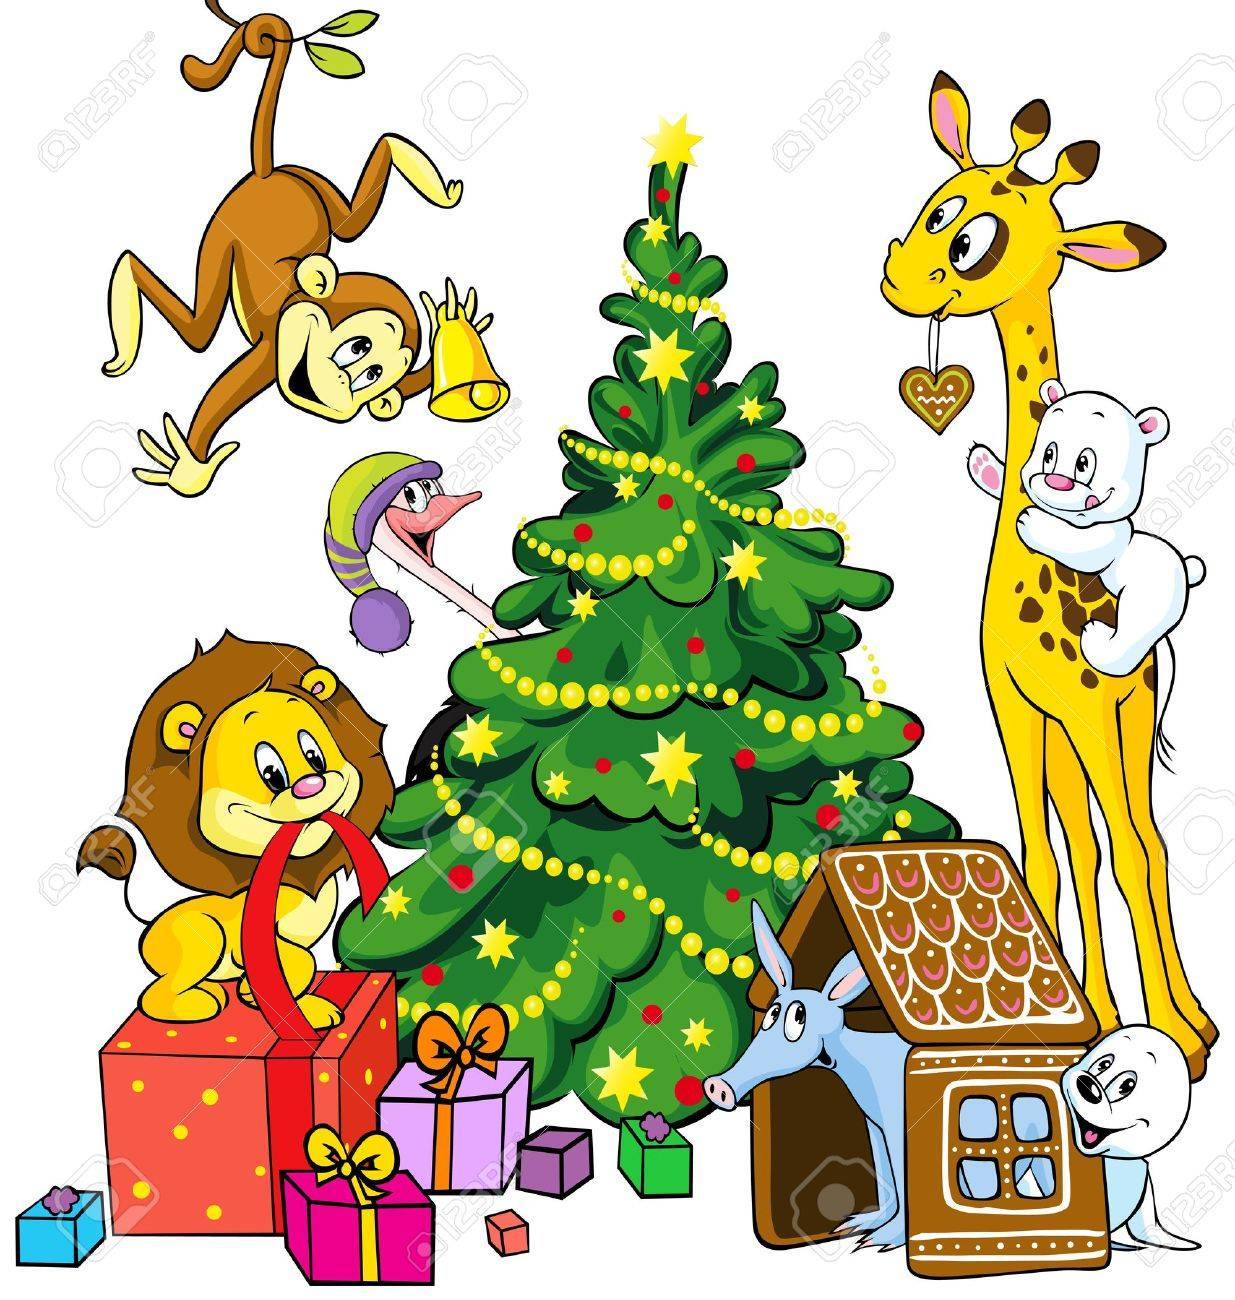 16260260-cute-animals-celebrate-christmas-isolated-on-white-background-Stock-Vector